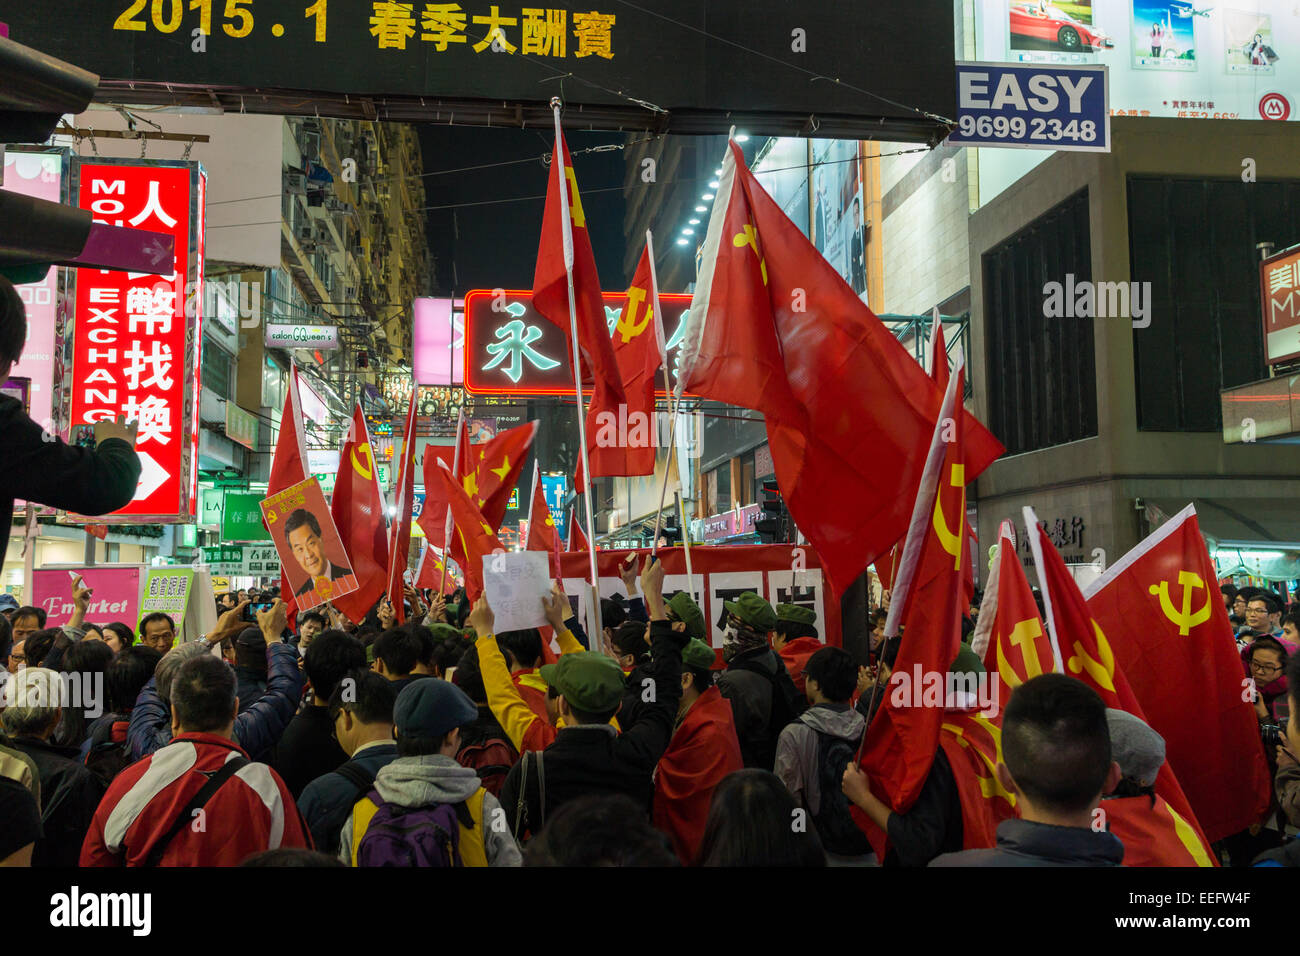 Protesters portraying as Chinese Red Guards in an Anti-Chief Executive (Leung Chun-ying) protest in Mong Kok, Hong - Stock Image